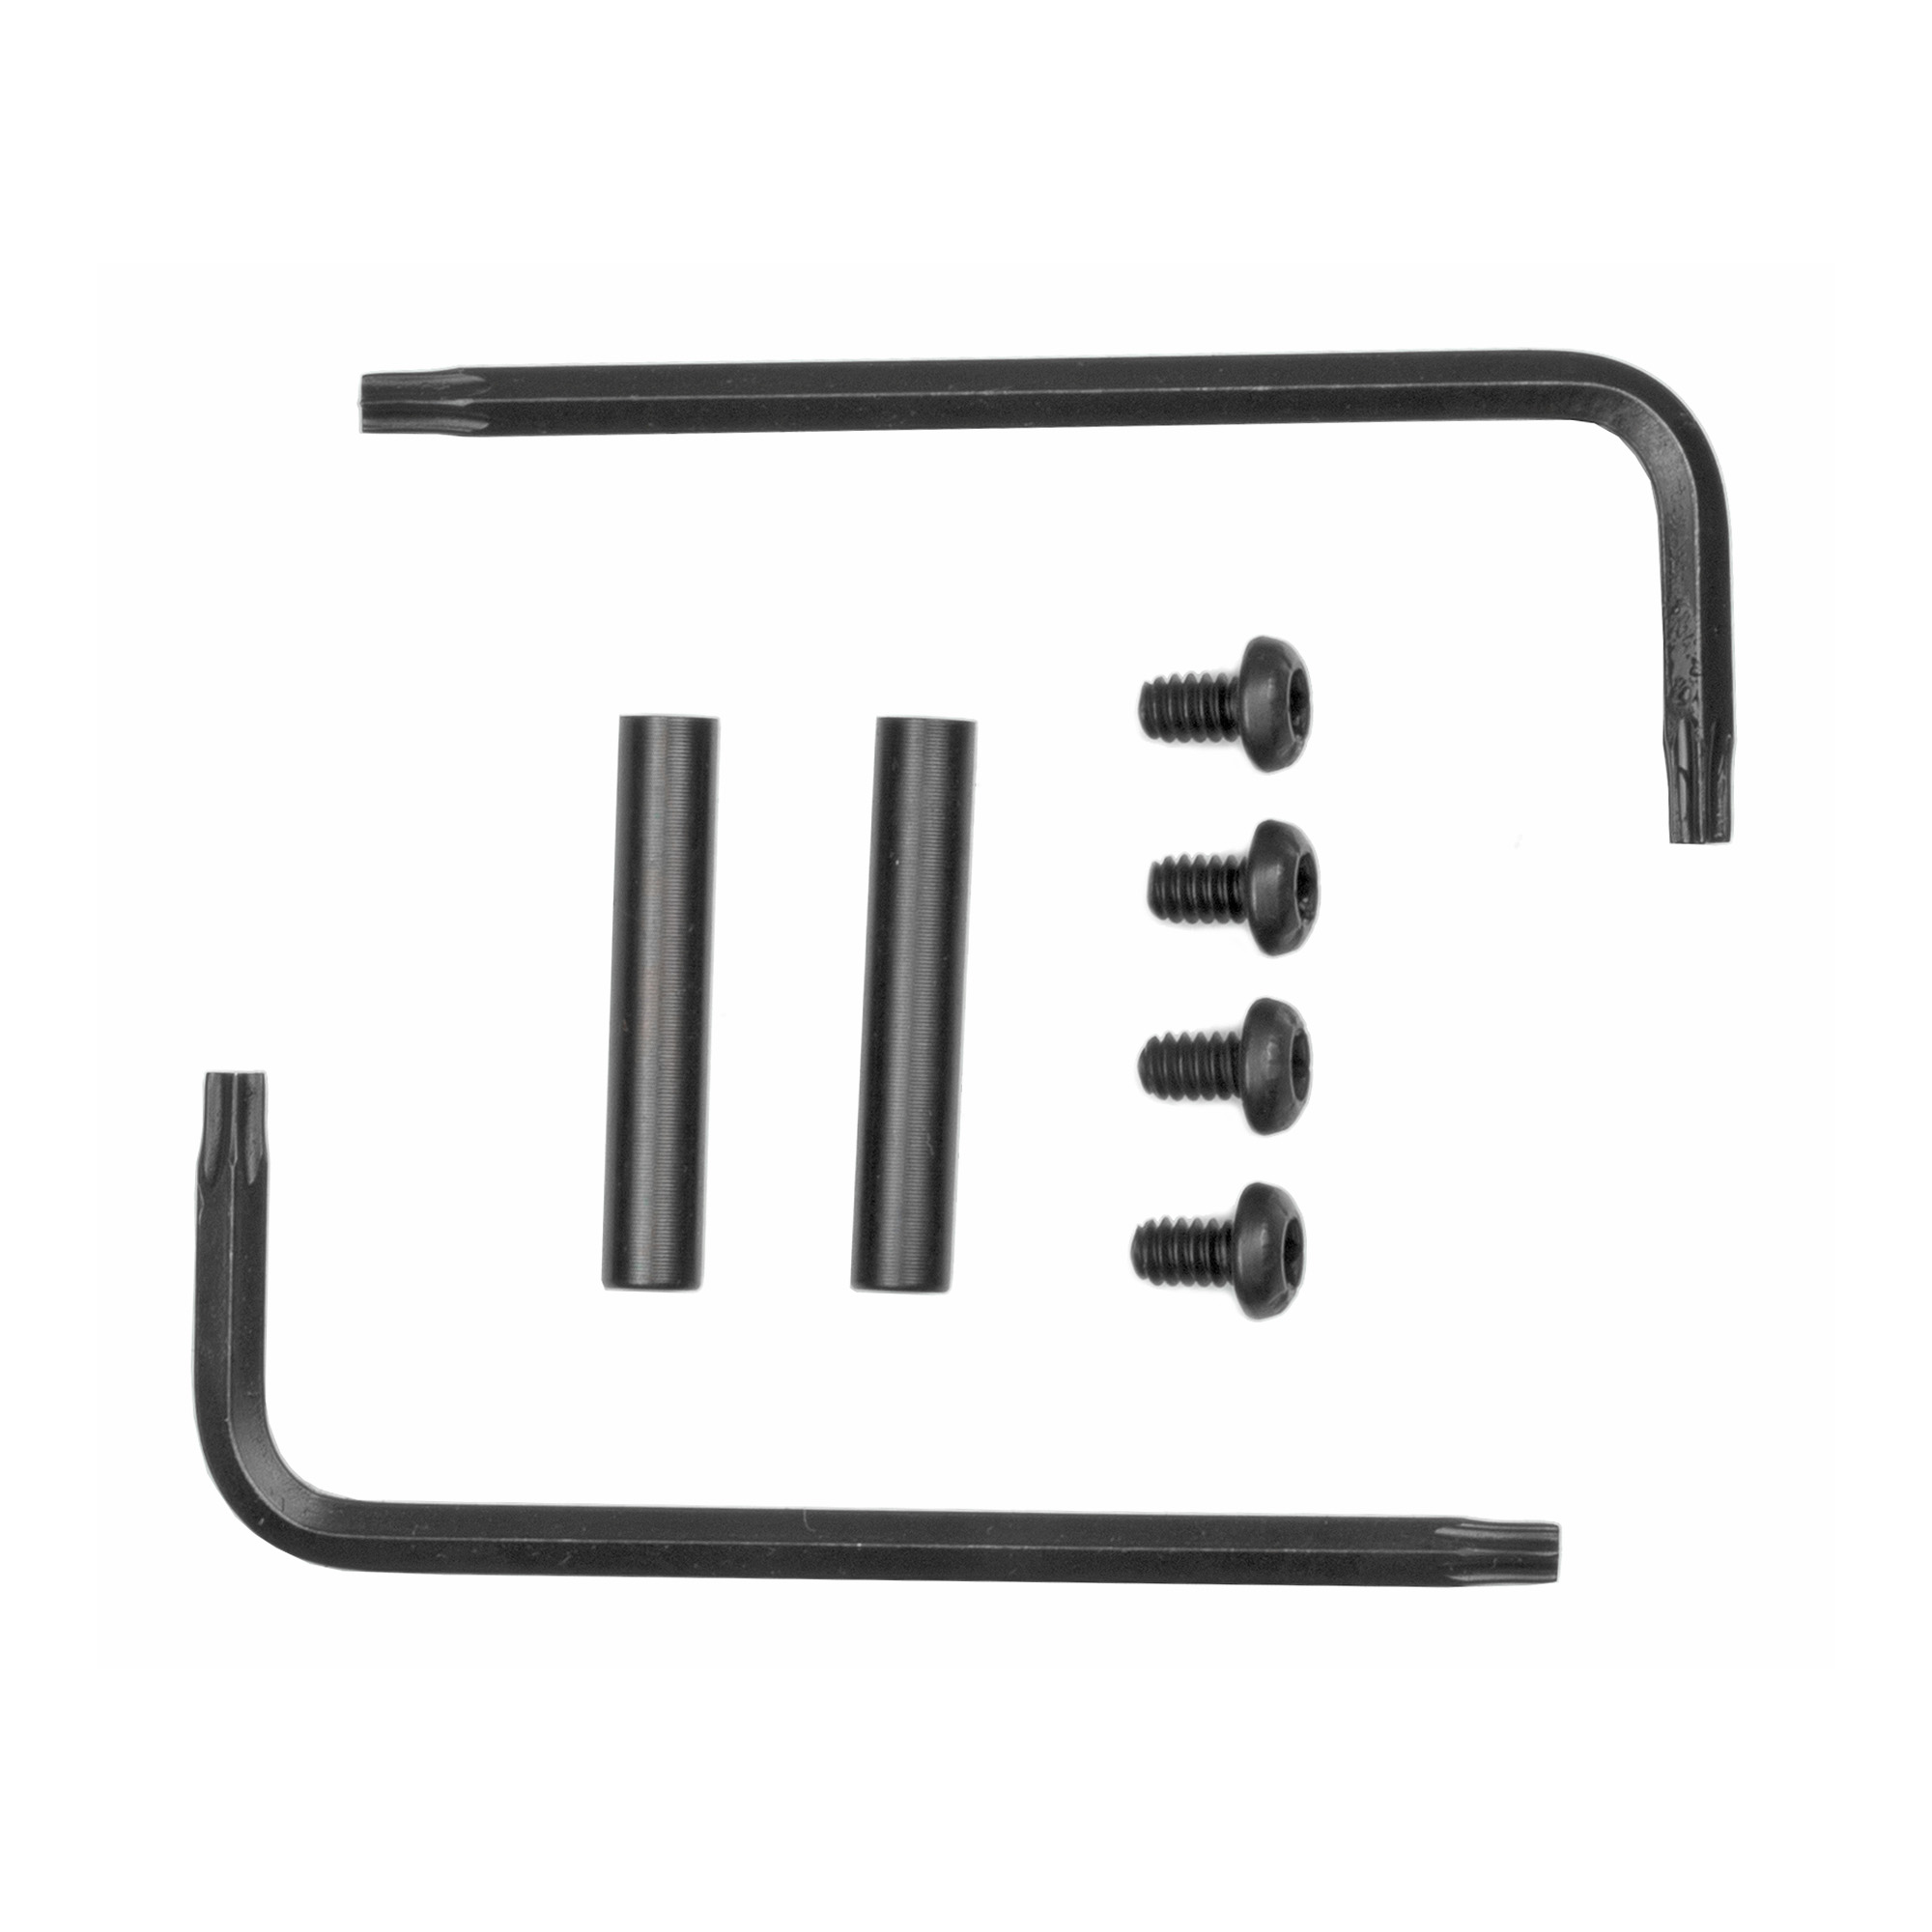 The CMC Trigger Anti-Walk Pin Set is easy to install and includes installation instructions with each set.